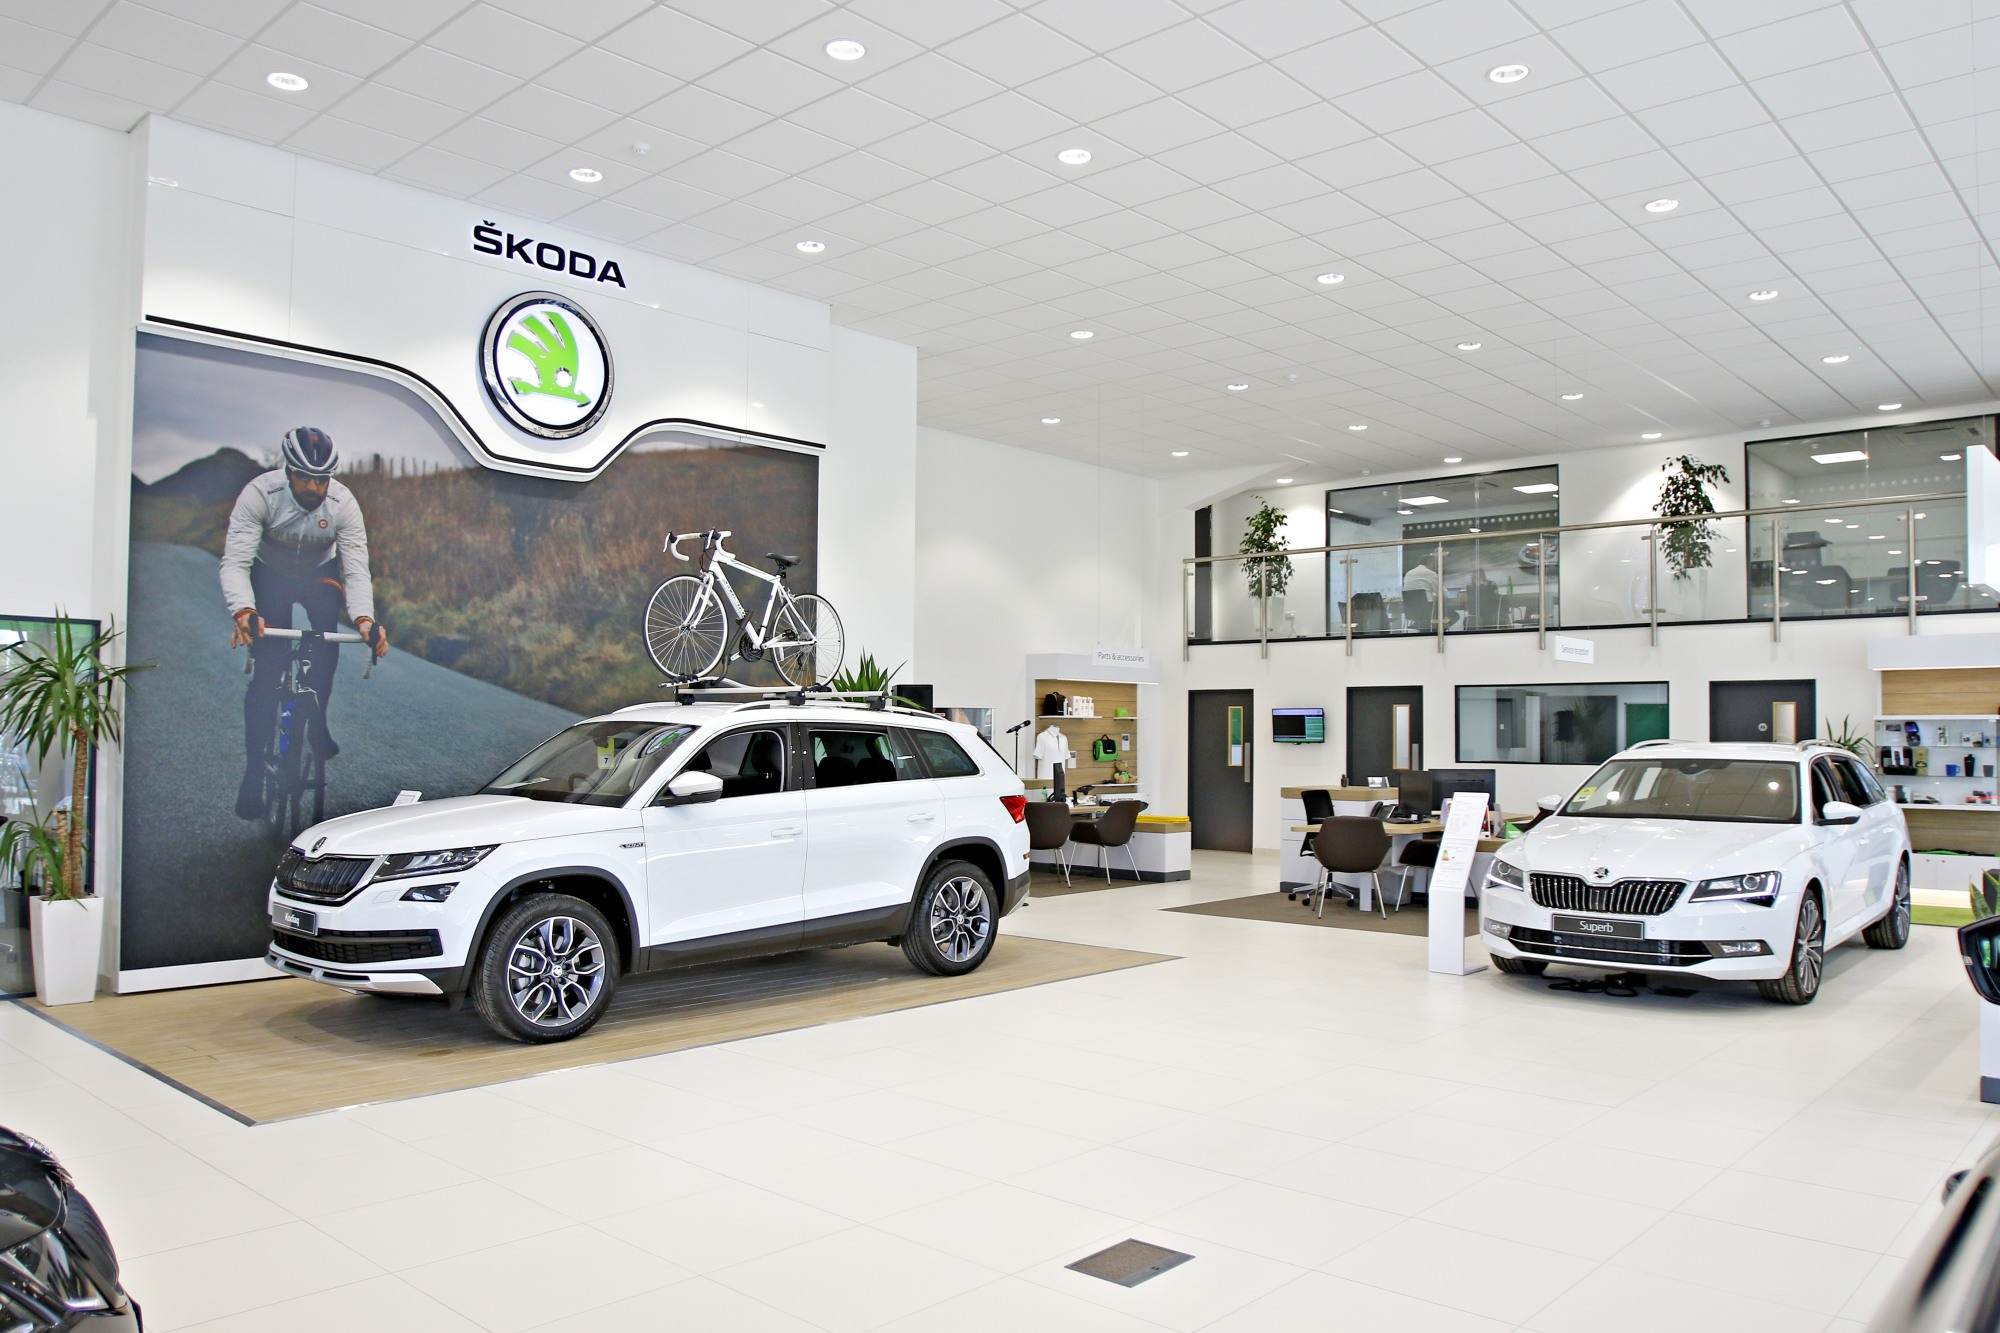 West End Garage ŠKODA announces the roll out of INDICATA